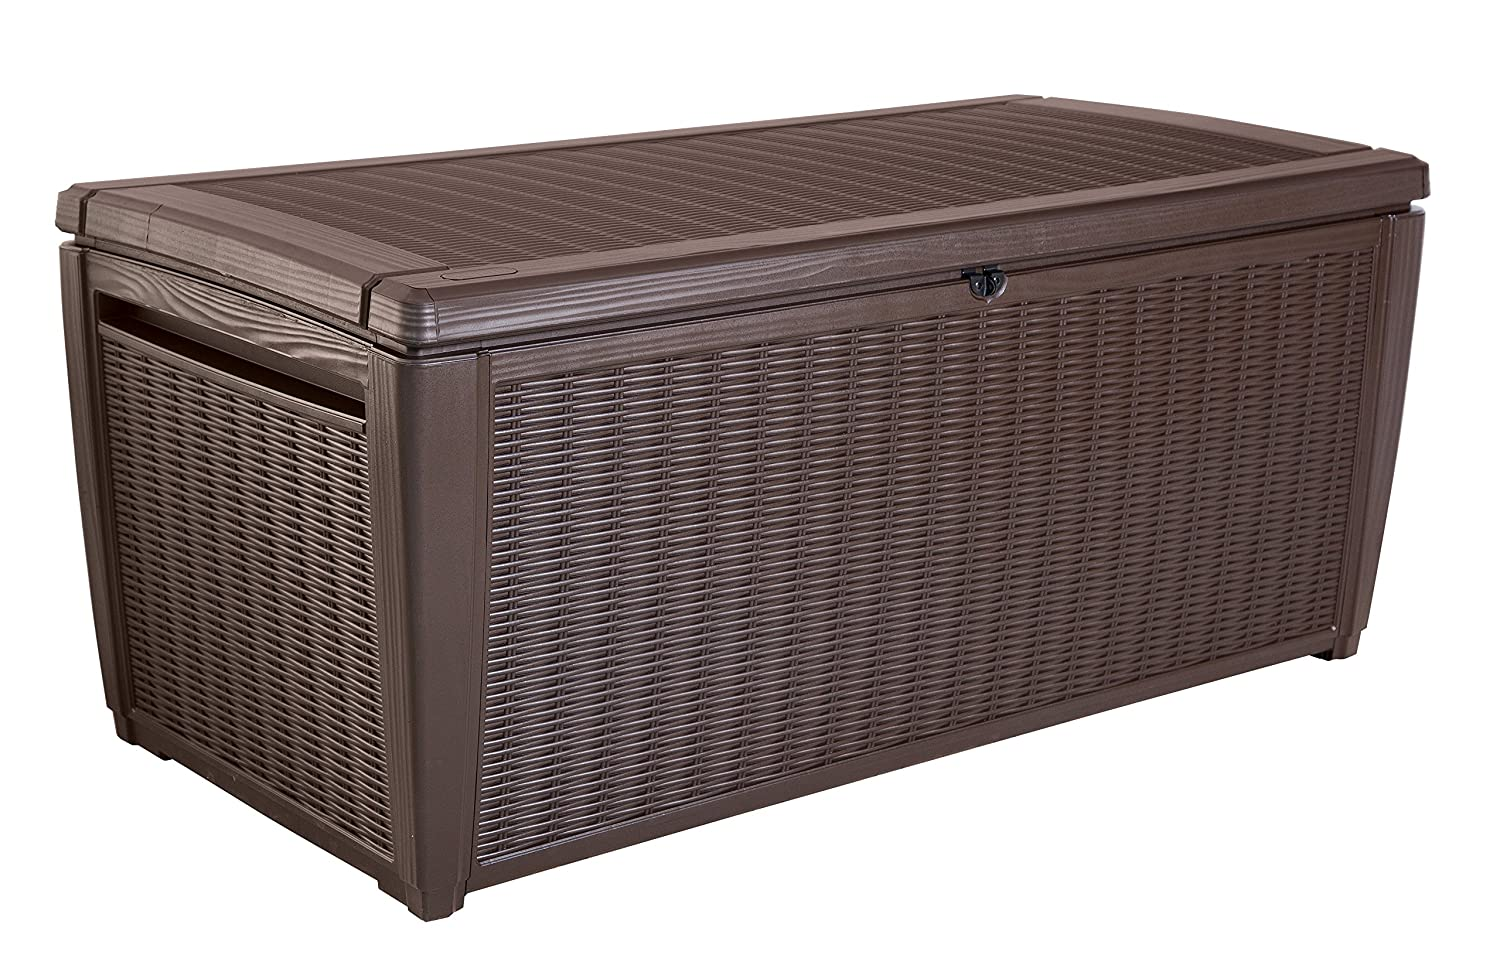 Amazon.com : Keter Sumatra 135 Gallon Outdoor Storage Rattan Deck Box,  Brown : Garden U0026 Outdoor